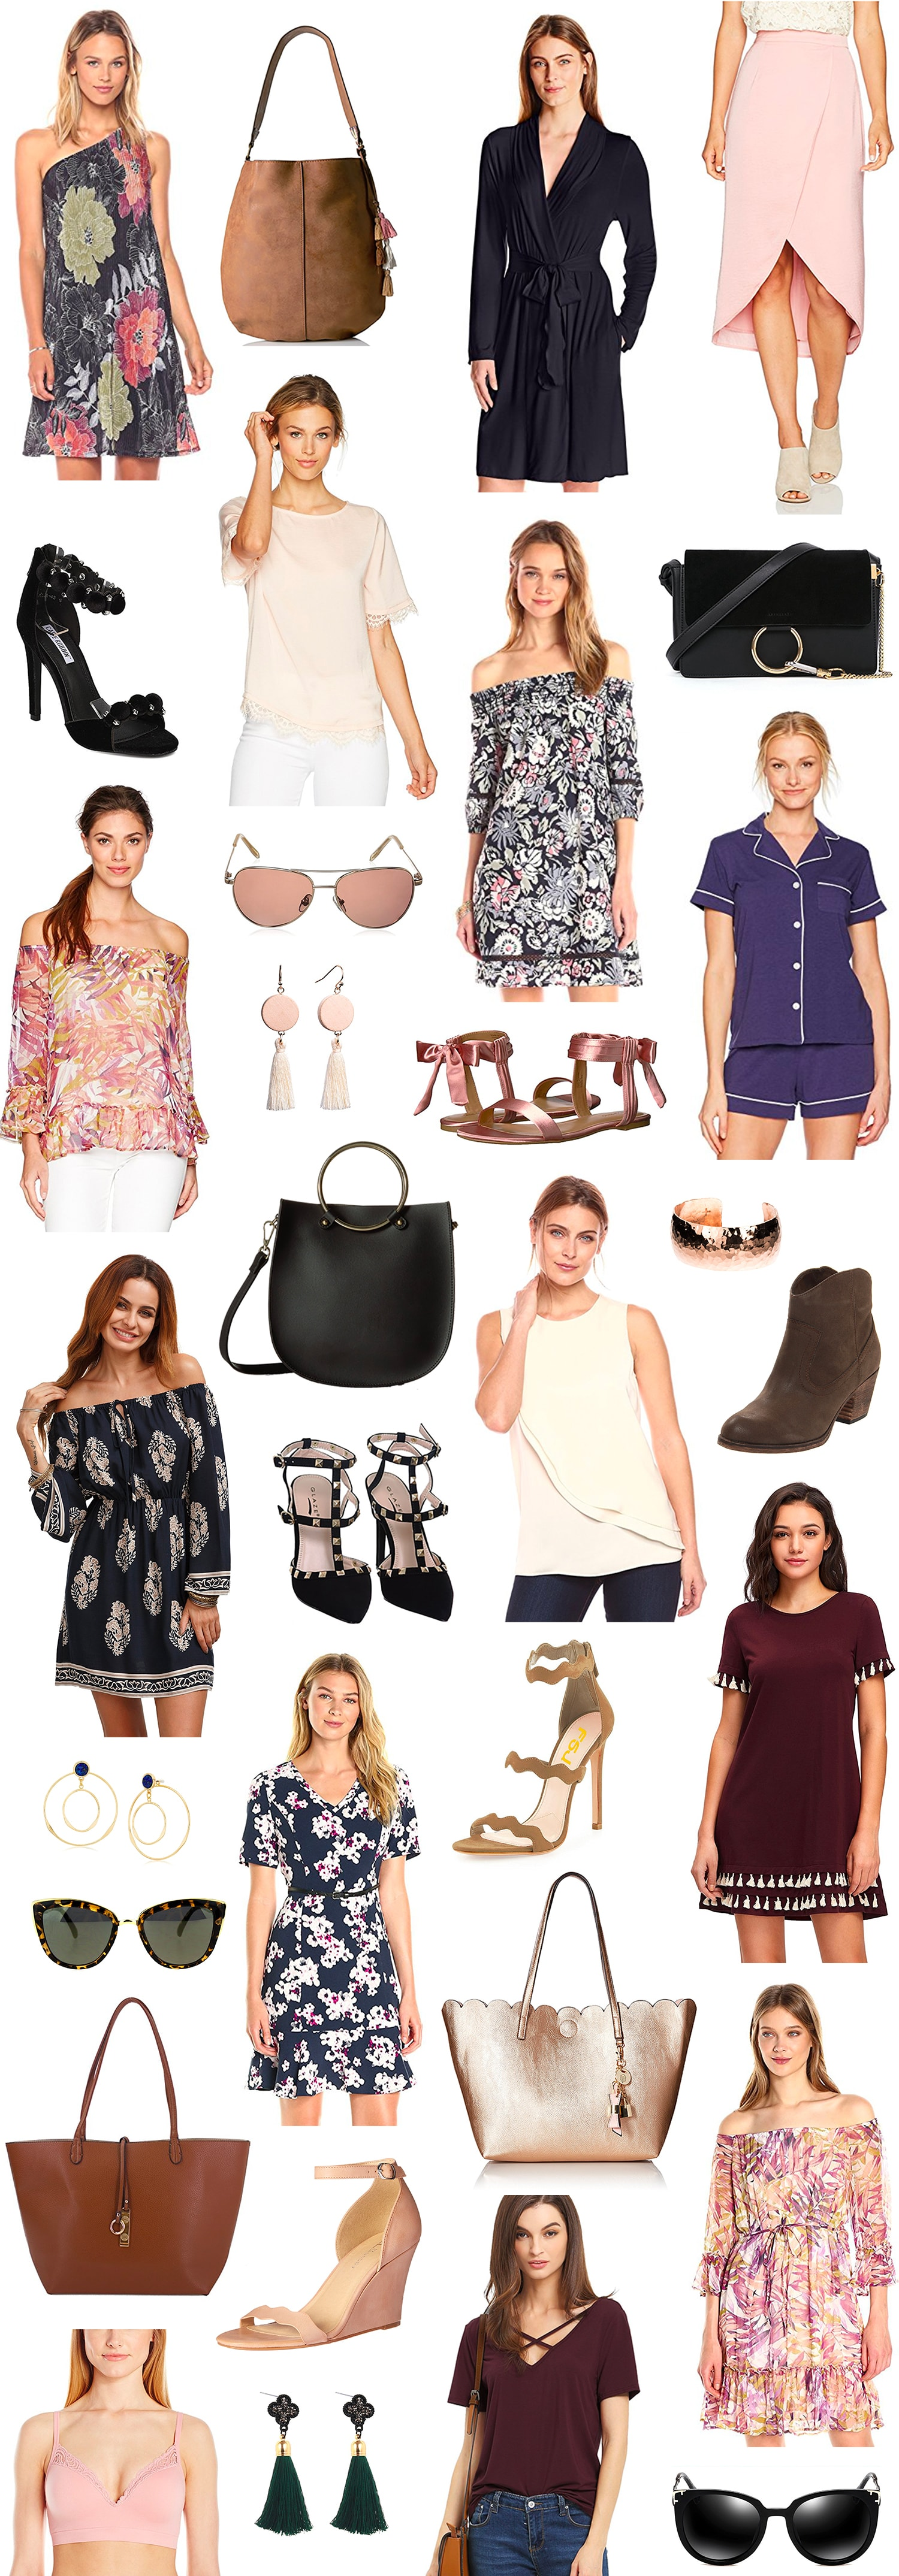 cute amazon finds under $50 Ashley Brooke Nicholas fashion beauty blogger cute dresses and purses